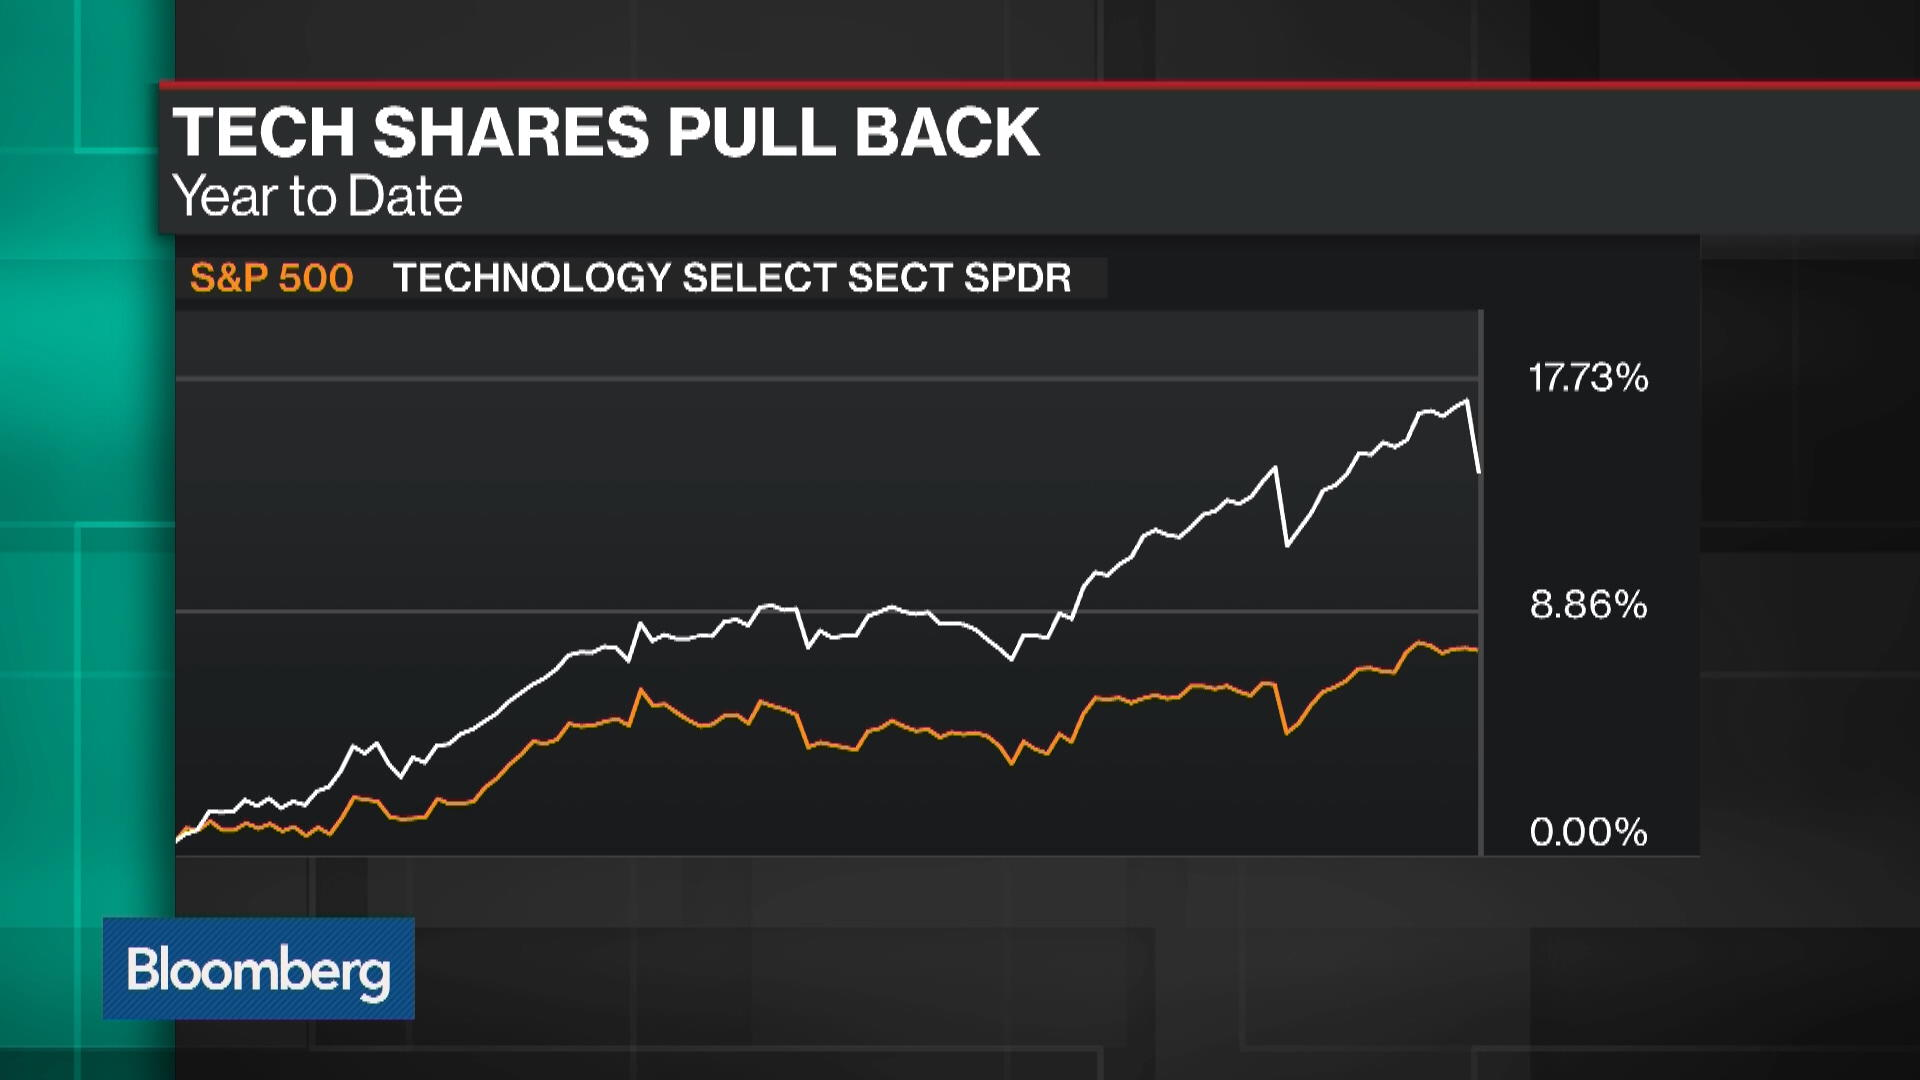 the rise of the tech stocks in the stock market in the recent years